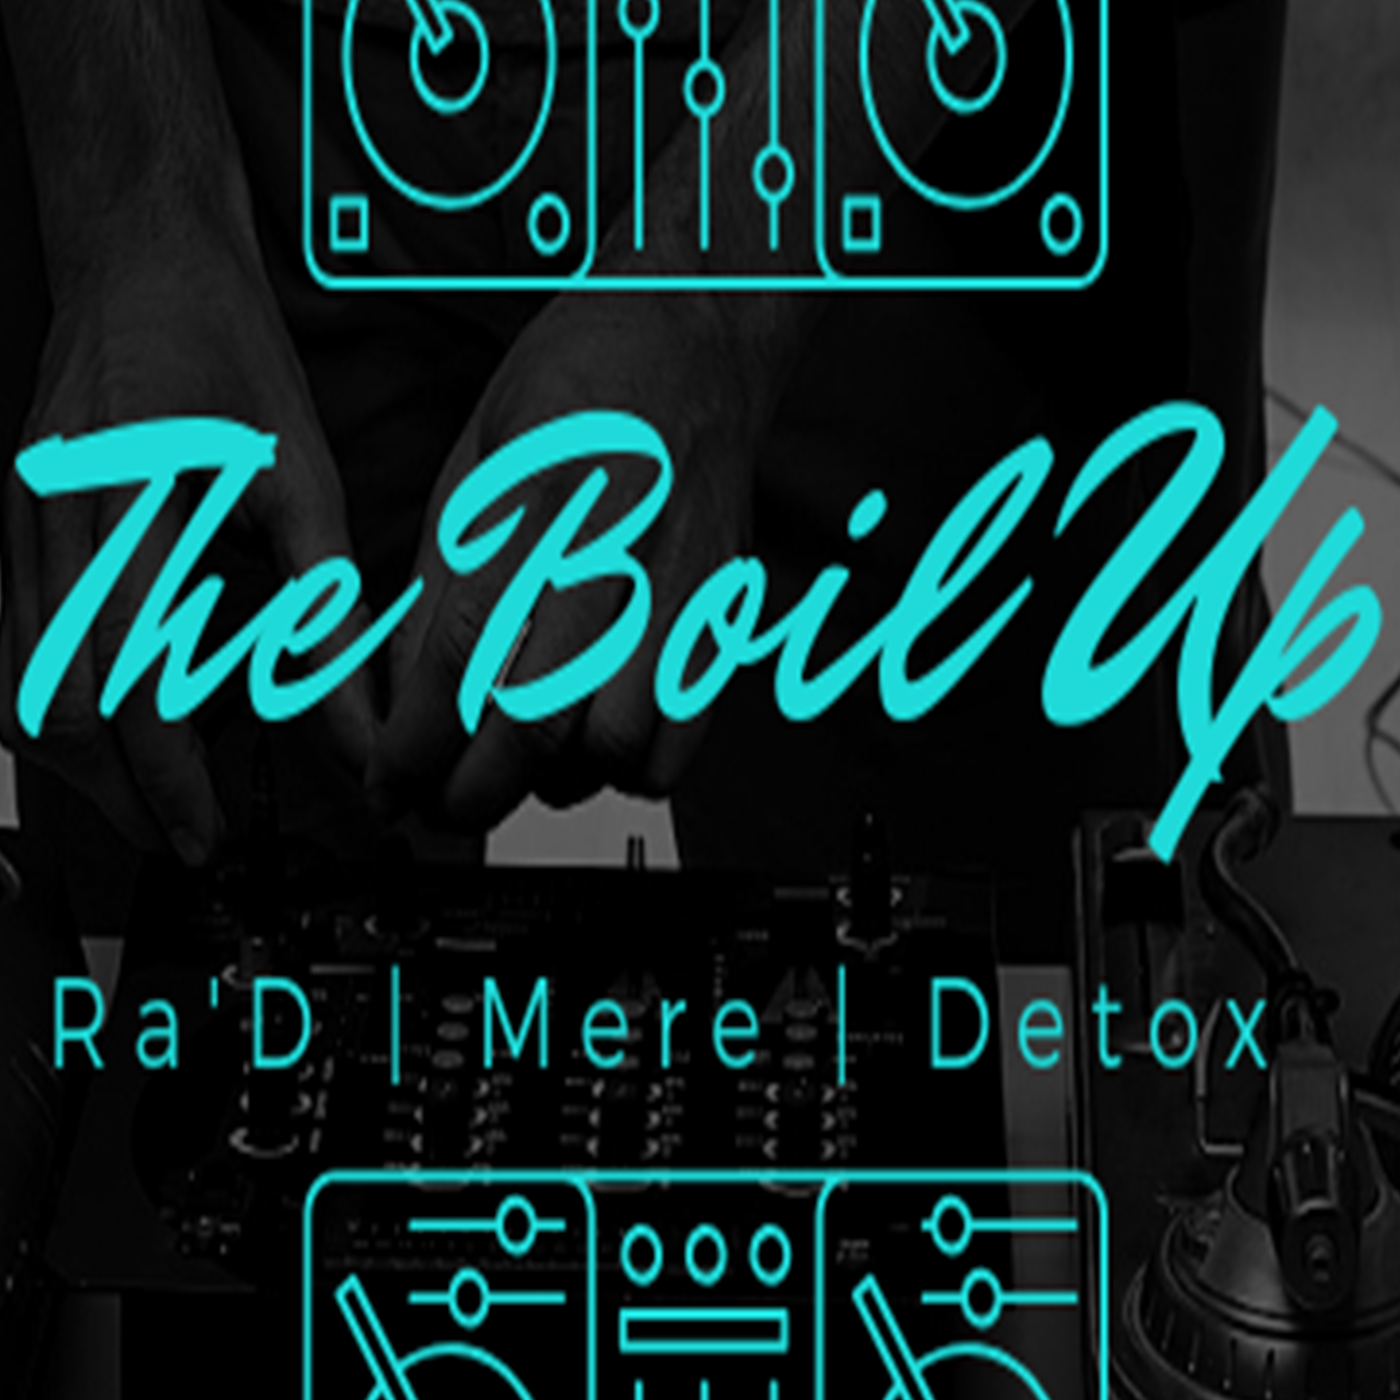 The Boil Up Radio Show - Ra, Mere, and DJ Detox